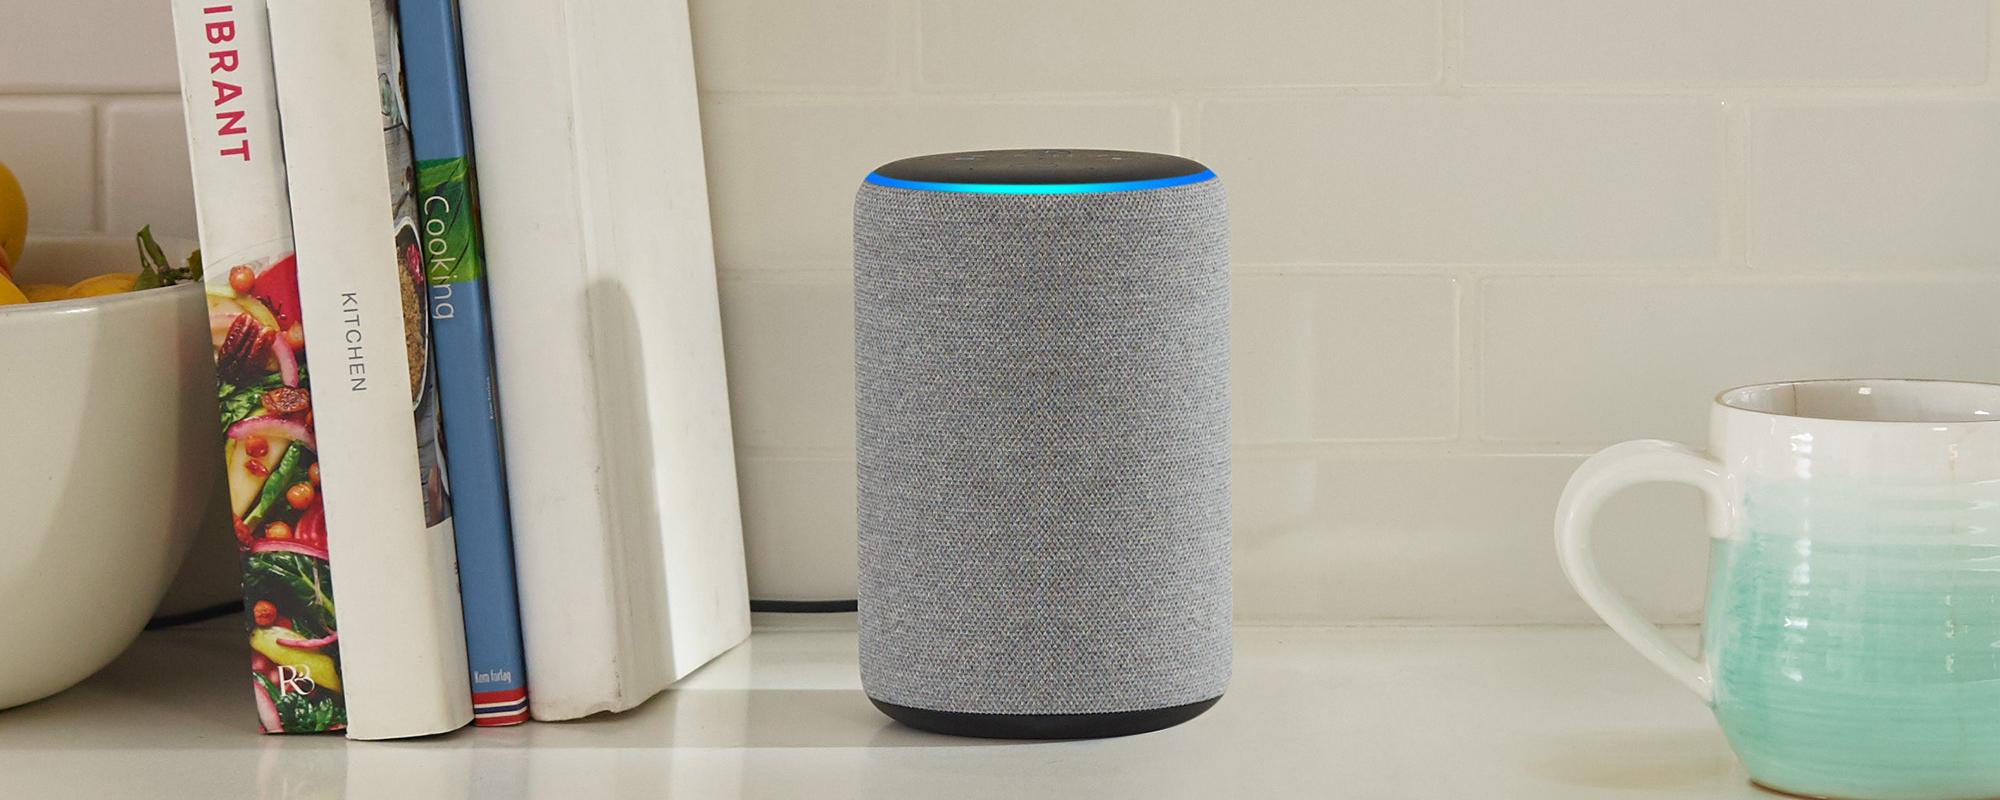 De Amazon Echo Plus